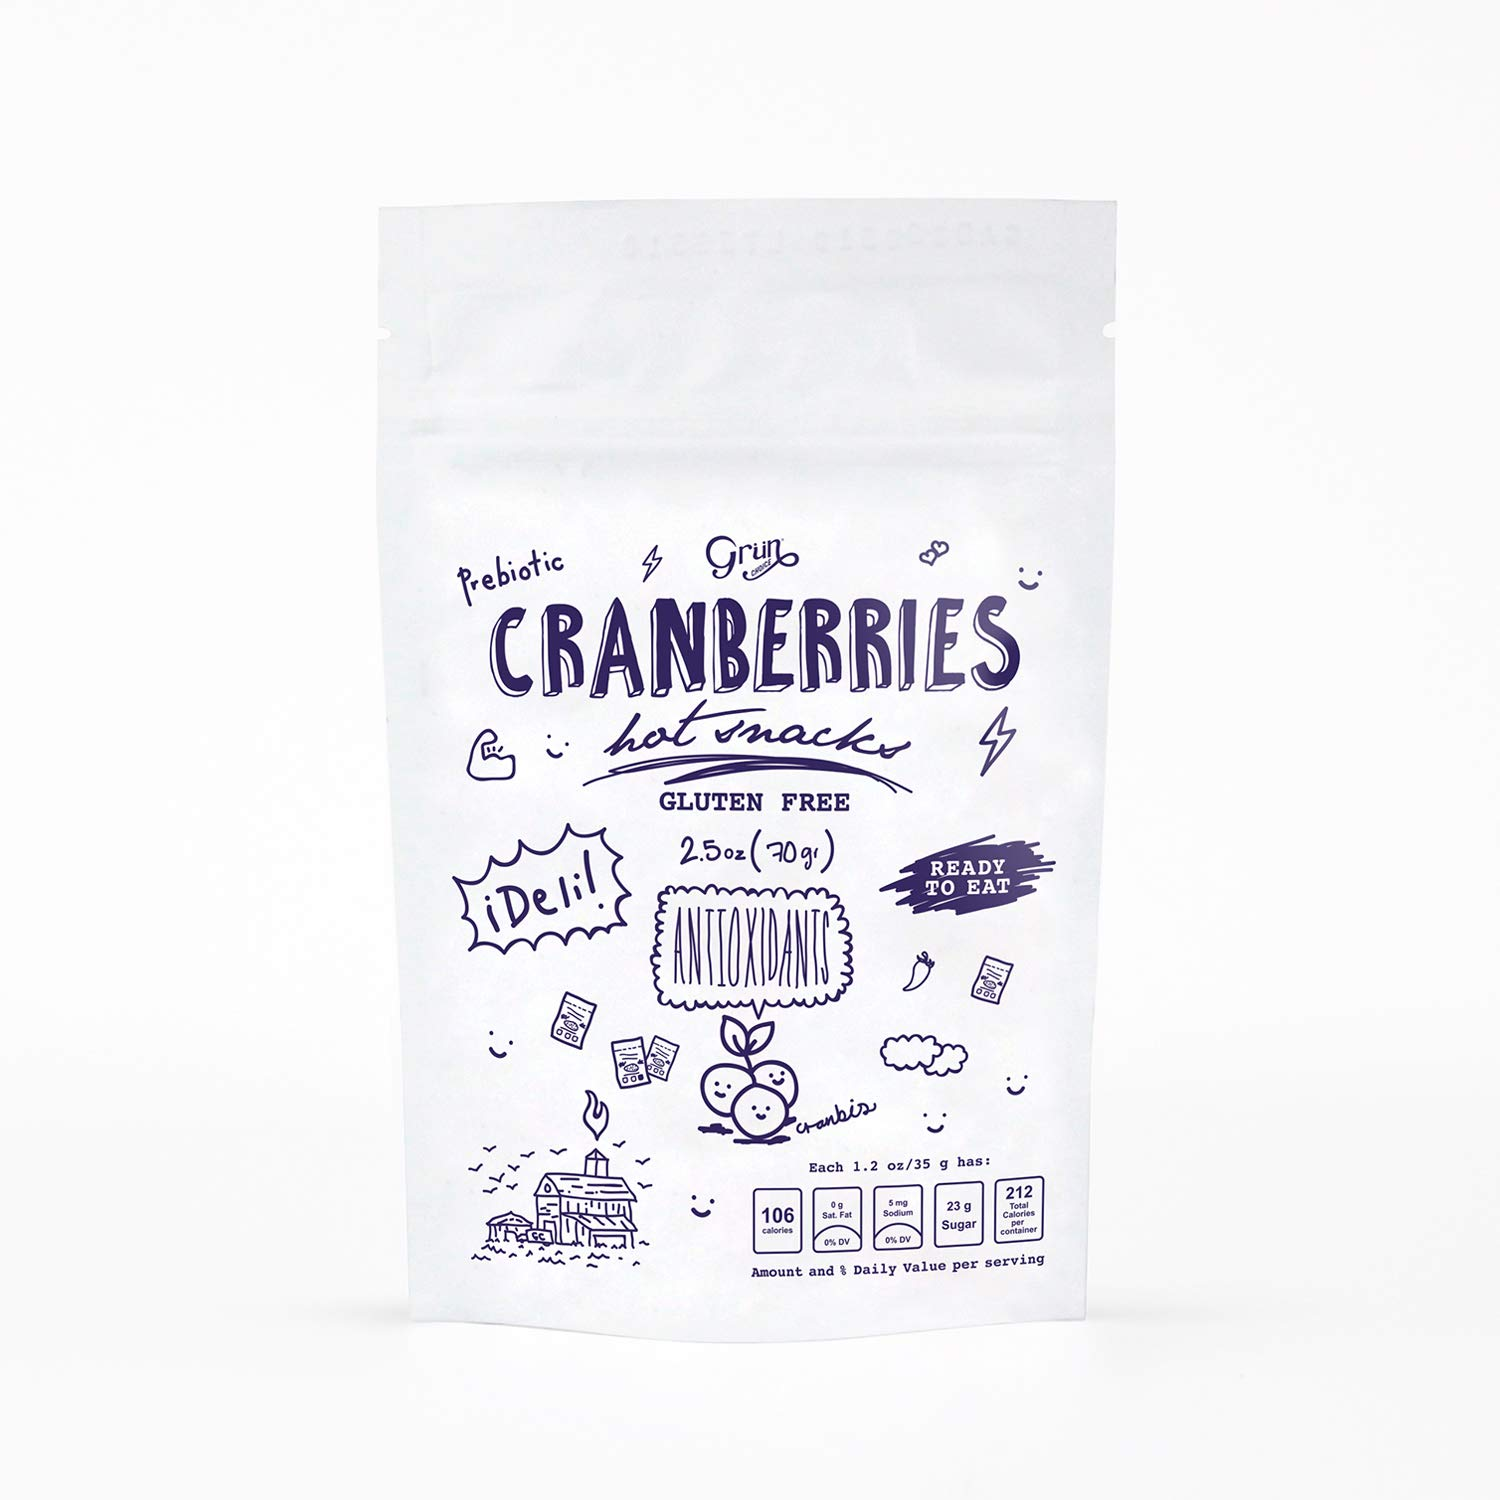 6 Pack – Hot Cranberries by Grün Choice|Chili Flavor, Powerful Superfood, Low Calorie Snacks, Agave Inulin for a Prebiotic Effect,| Nut & Gluten-Free | 70g